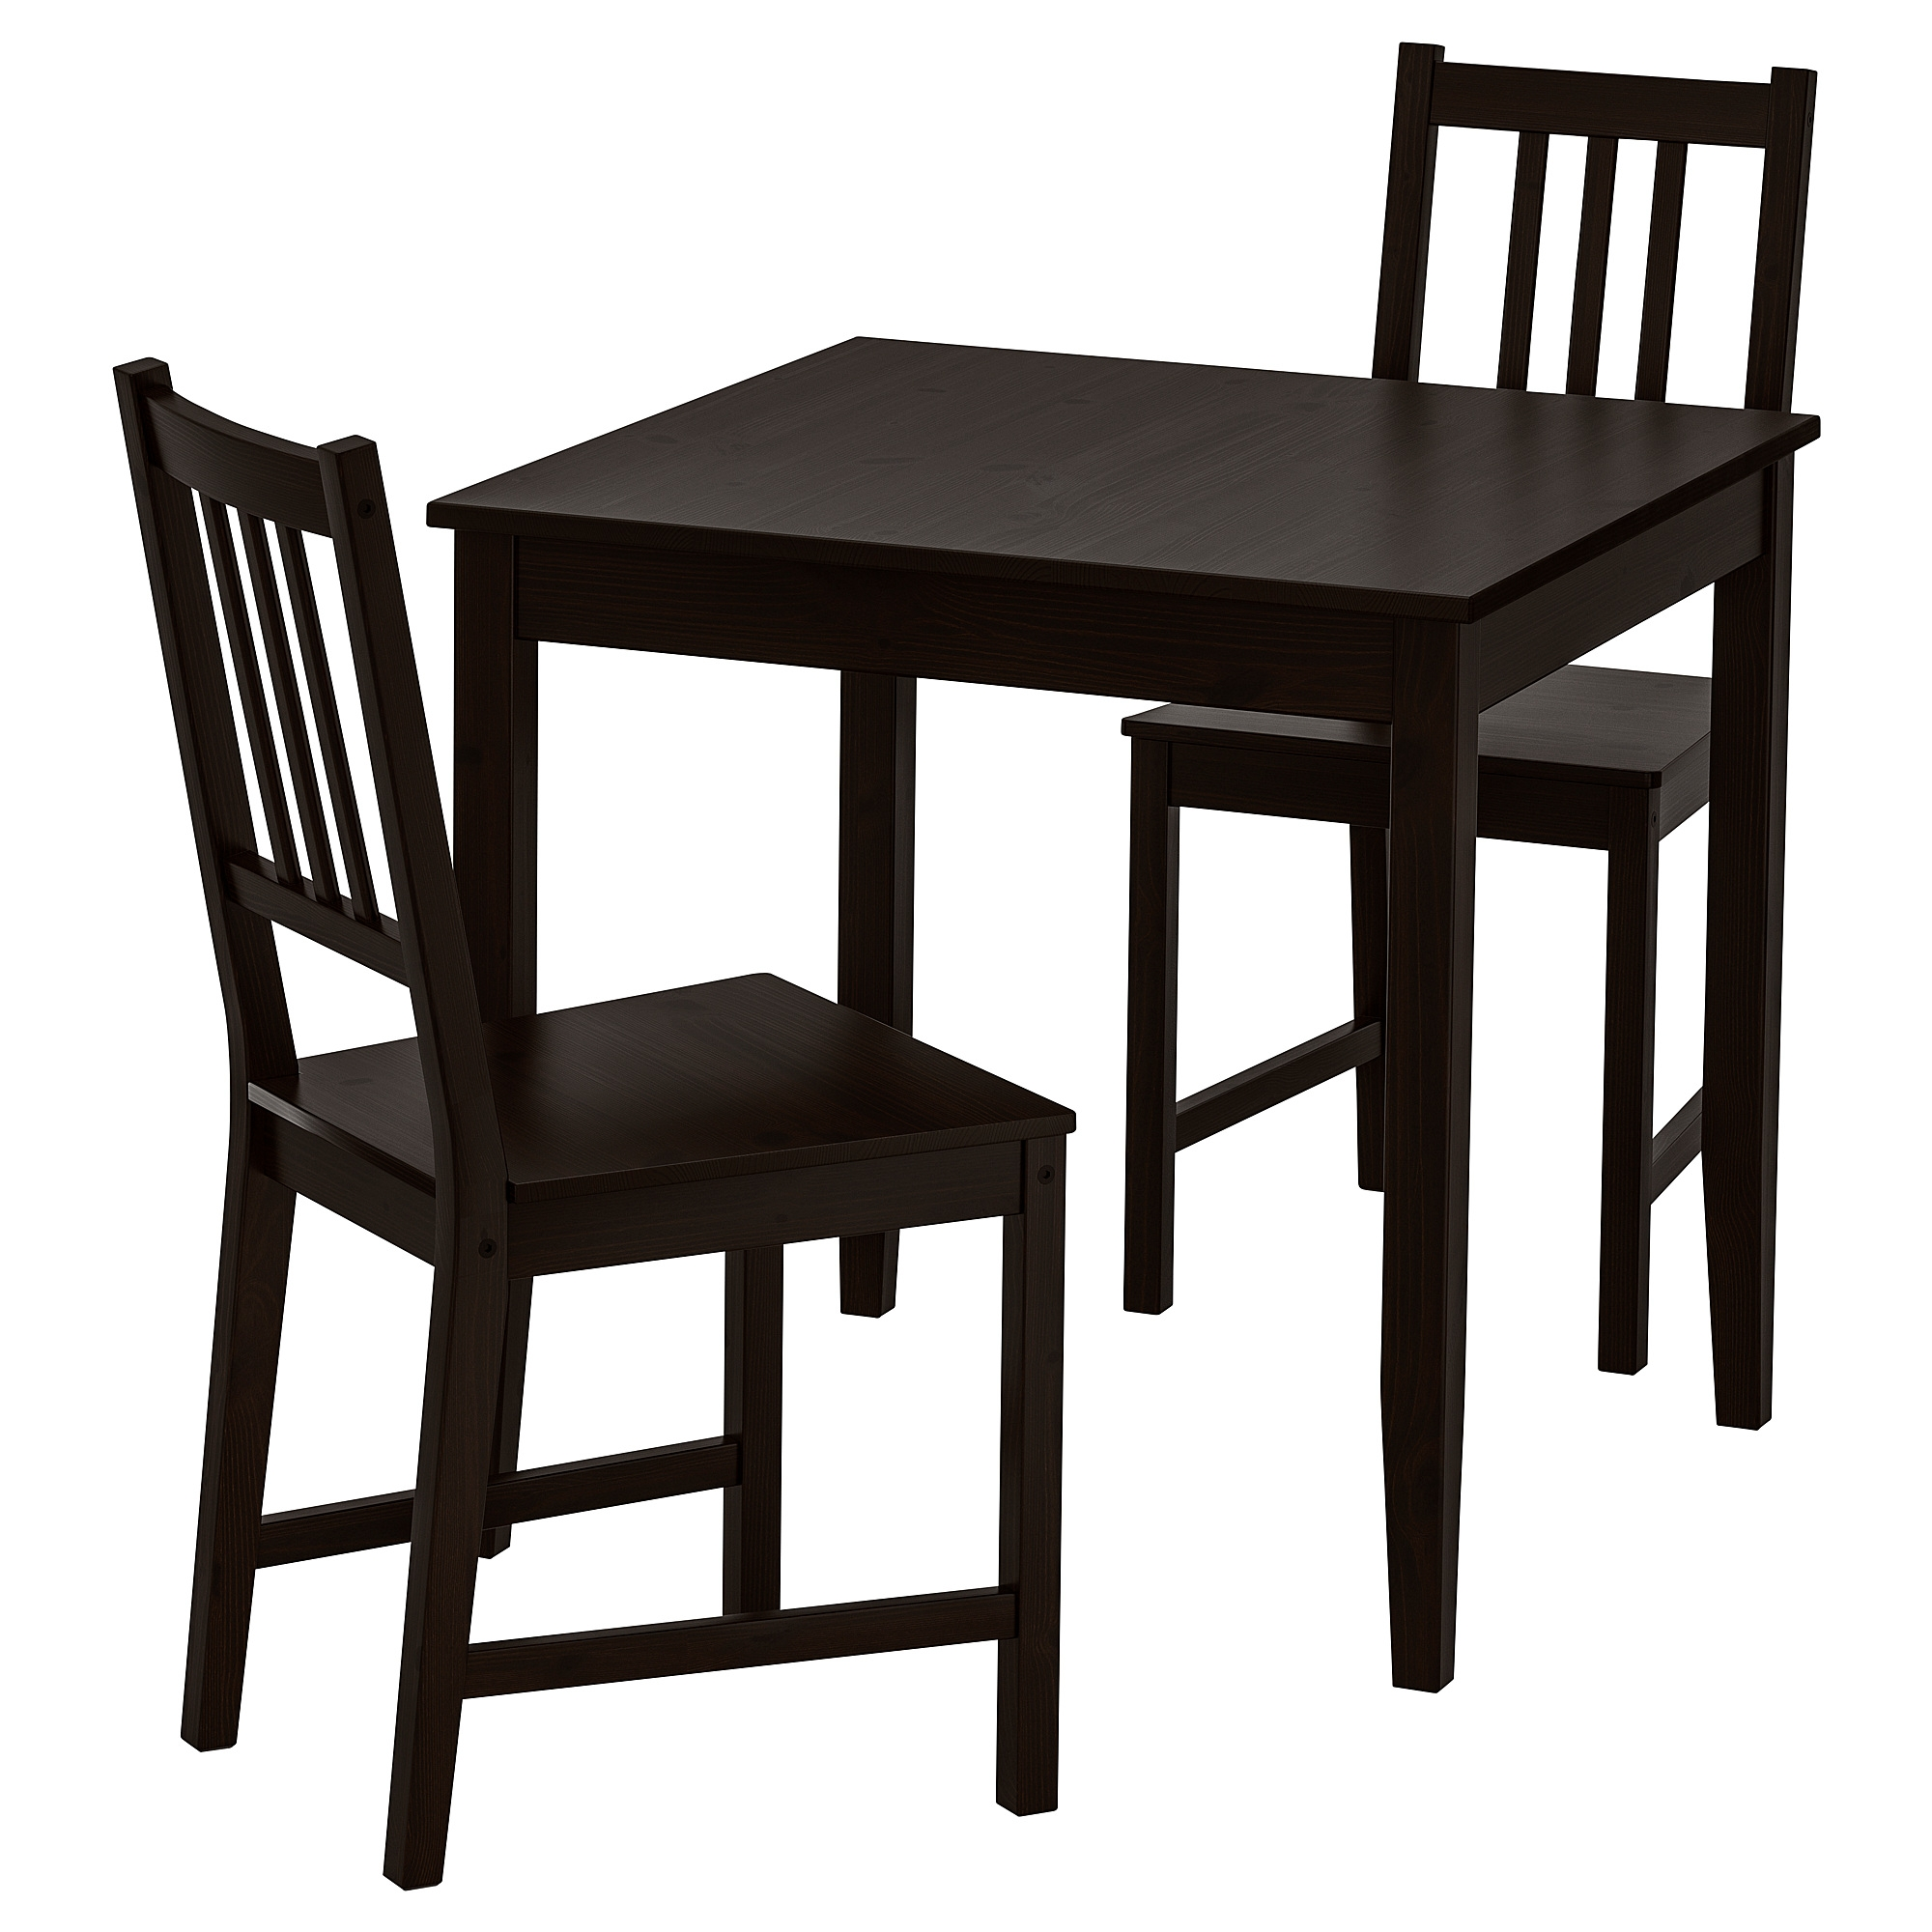 Table With 2 Chairs Lerhamn Stefan Table And 2 Chairs